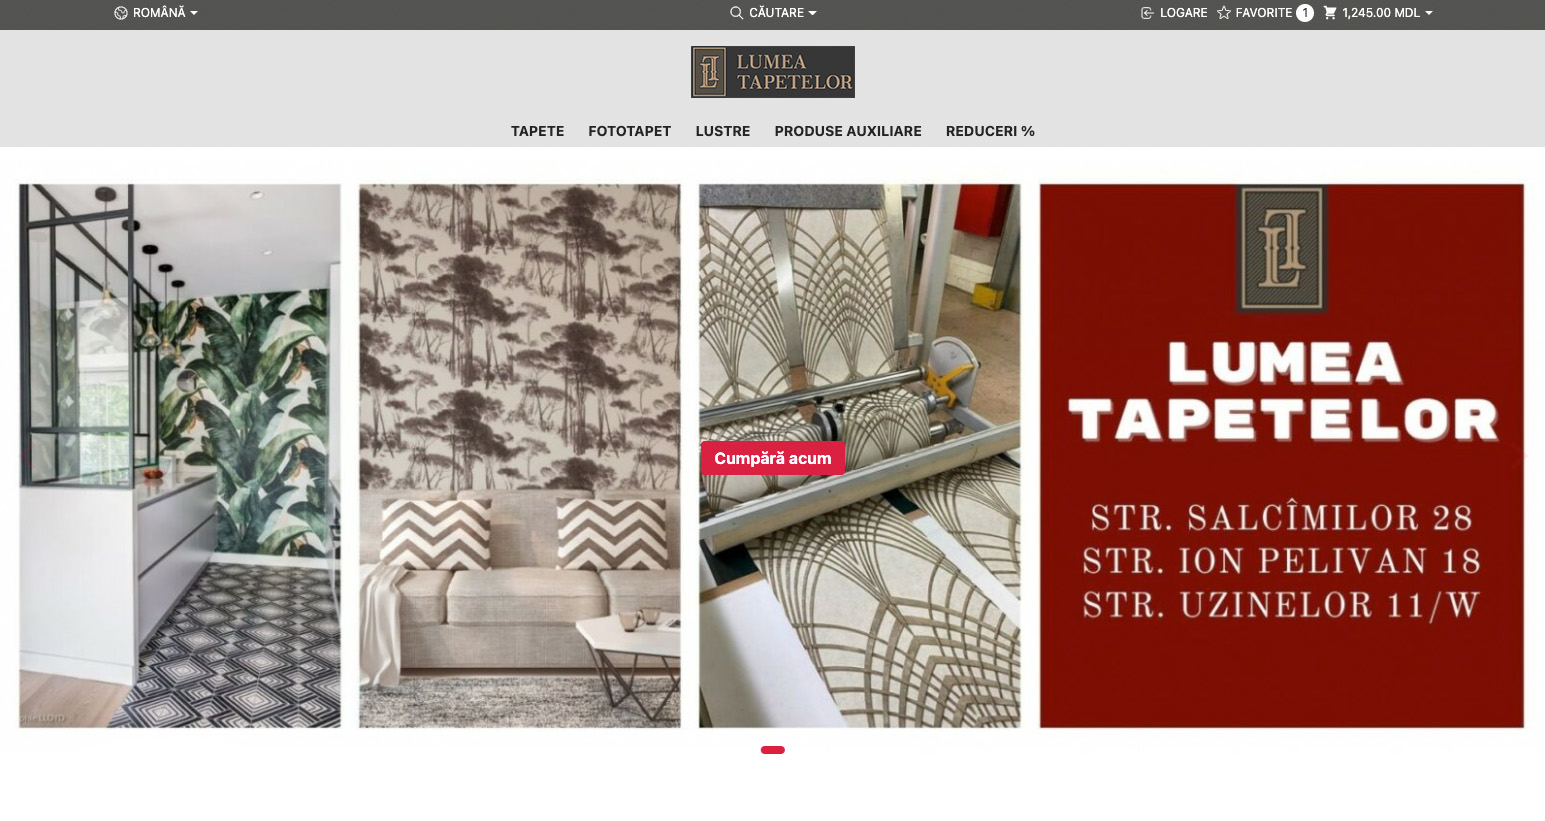 Redesign of the online store Lumea Tapetelor 9